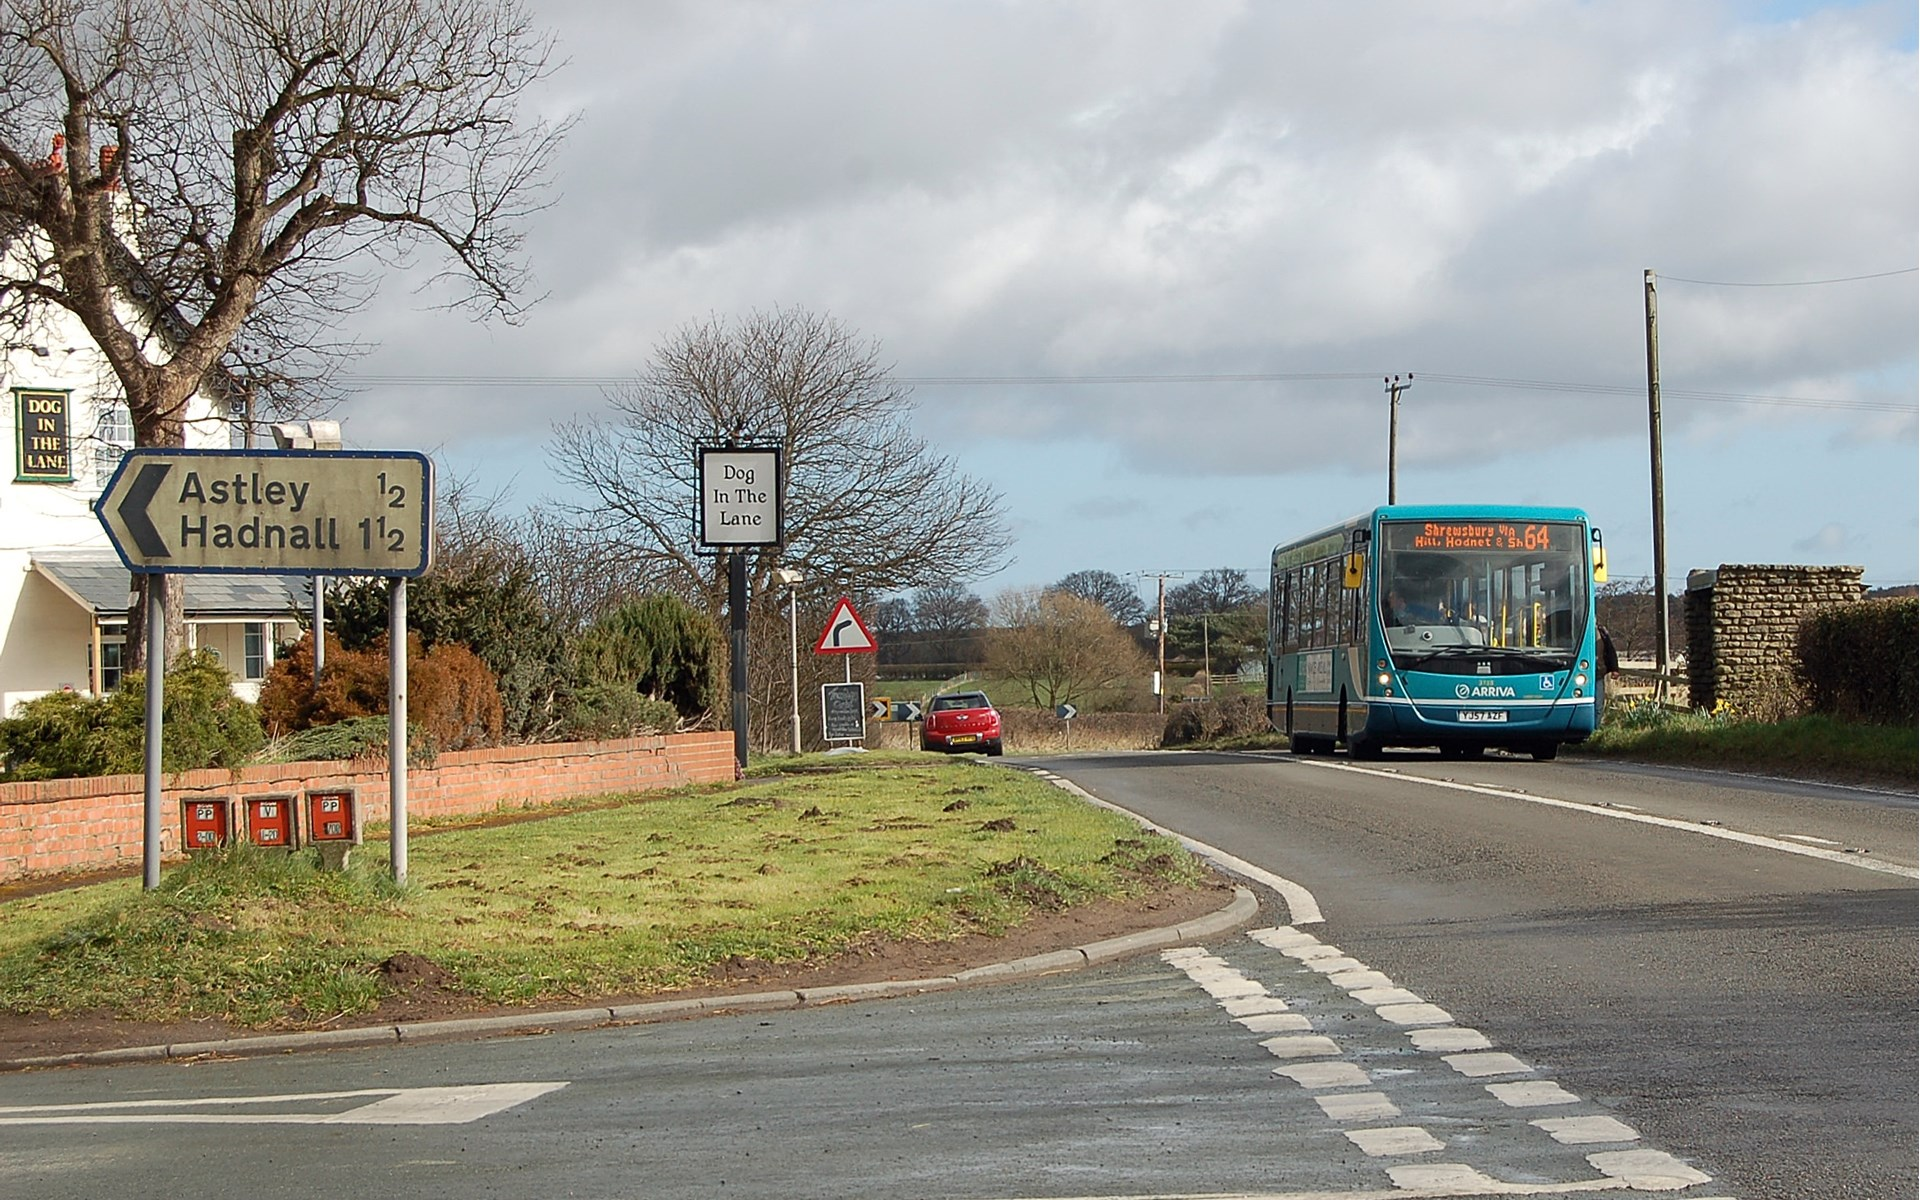 64 bus at Upper Astley